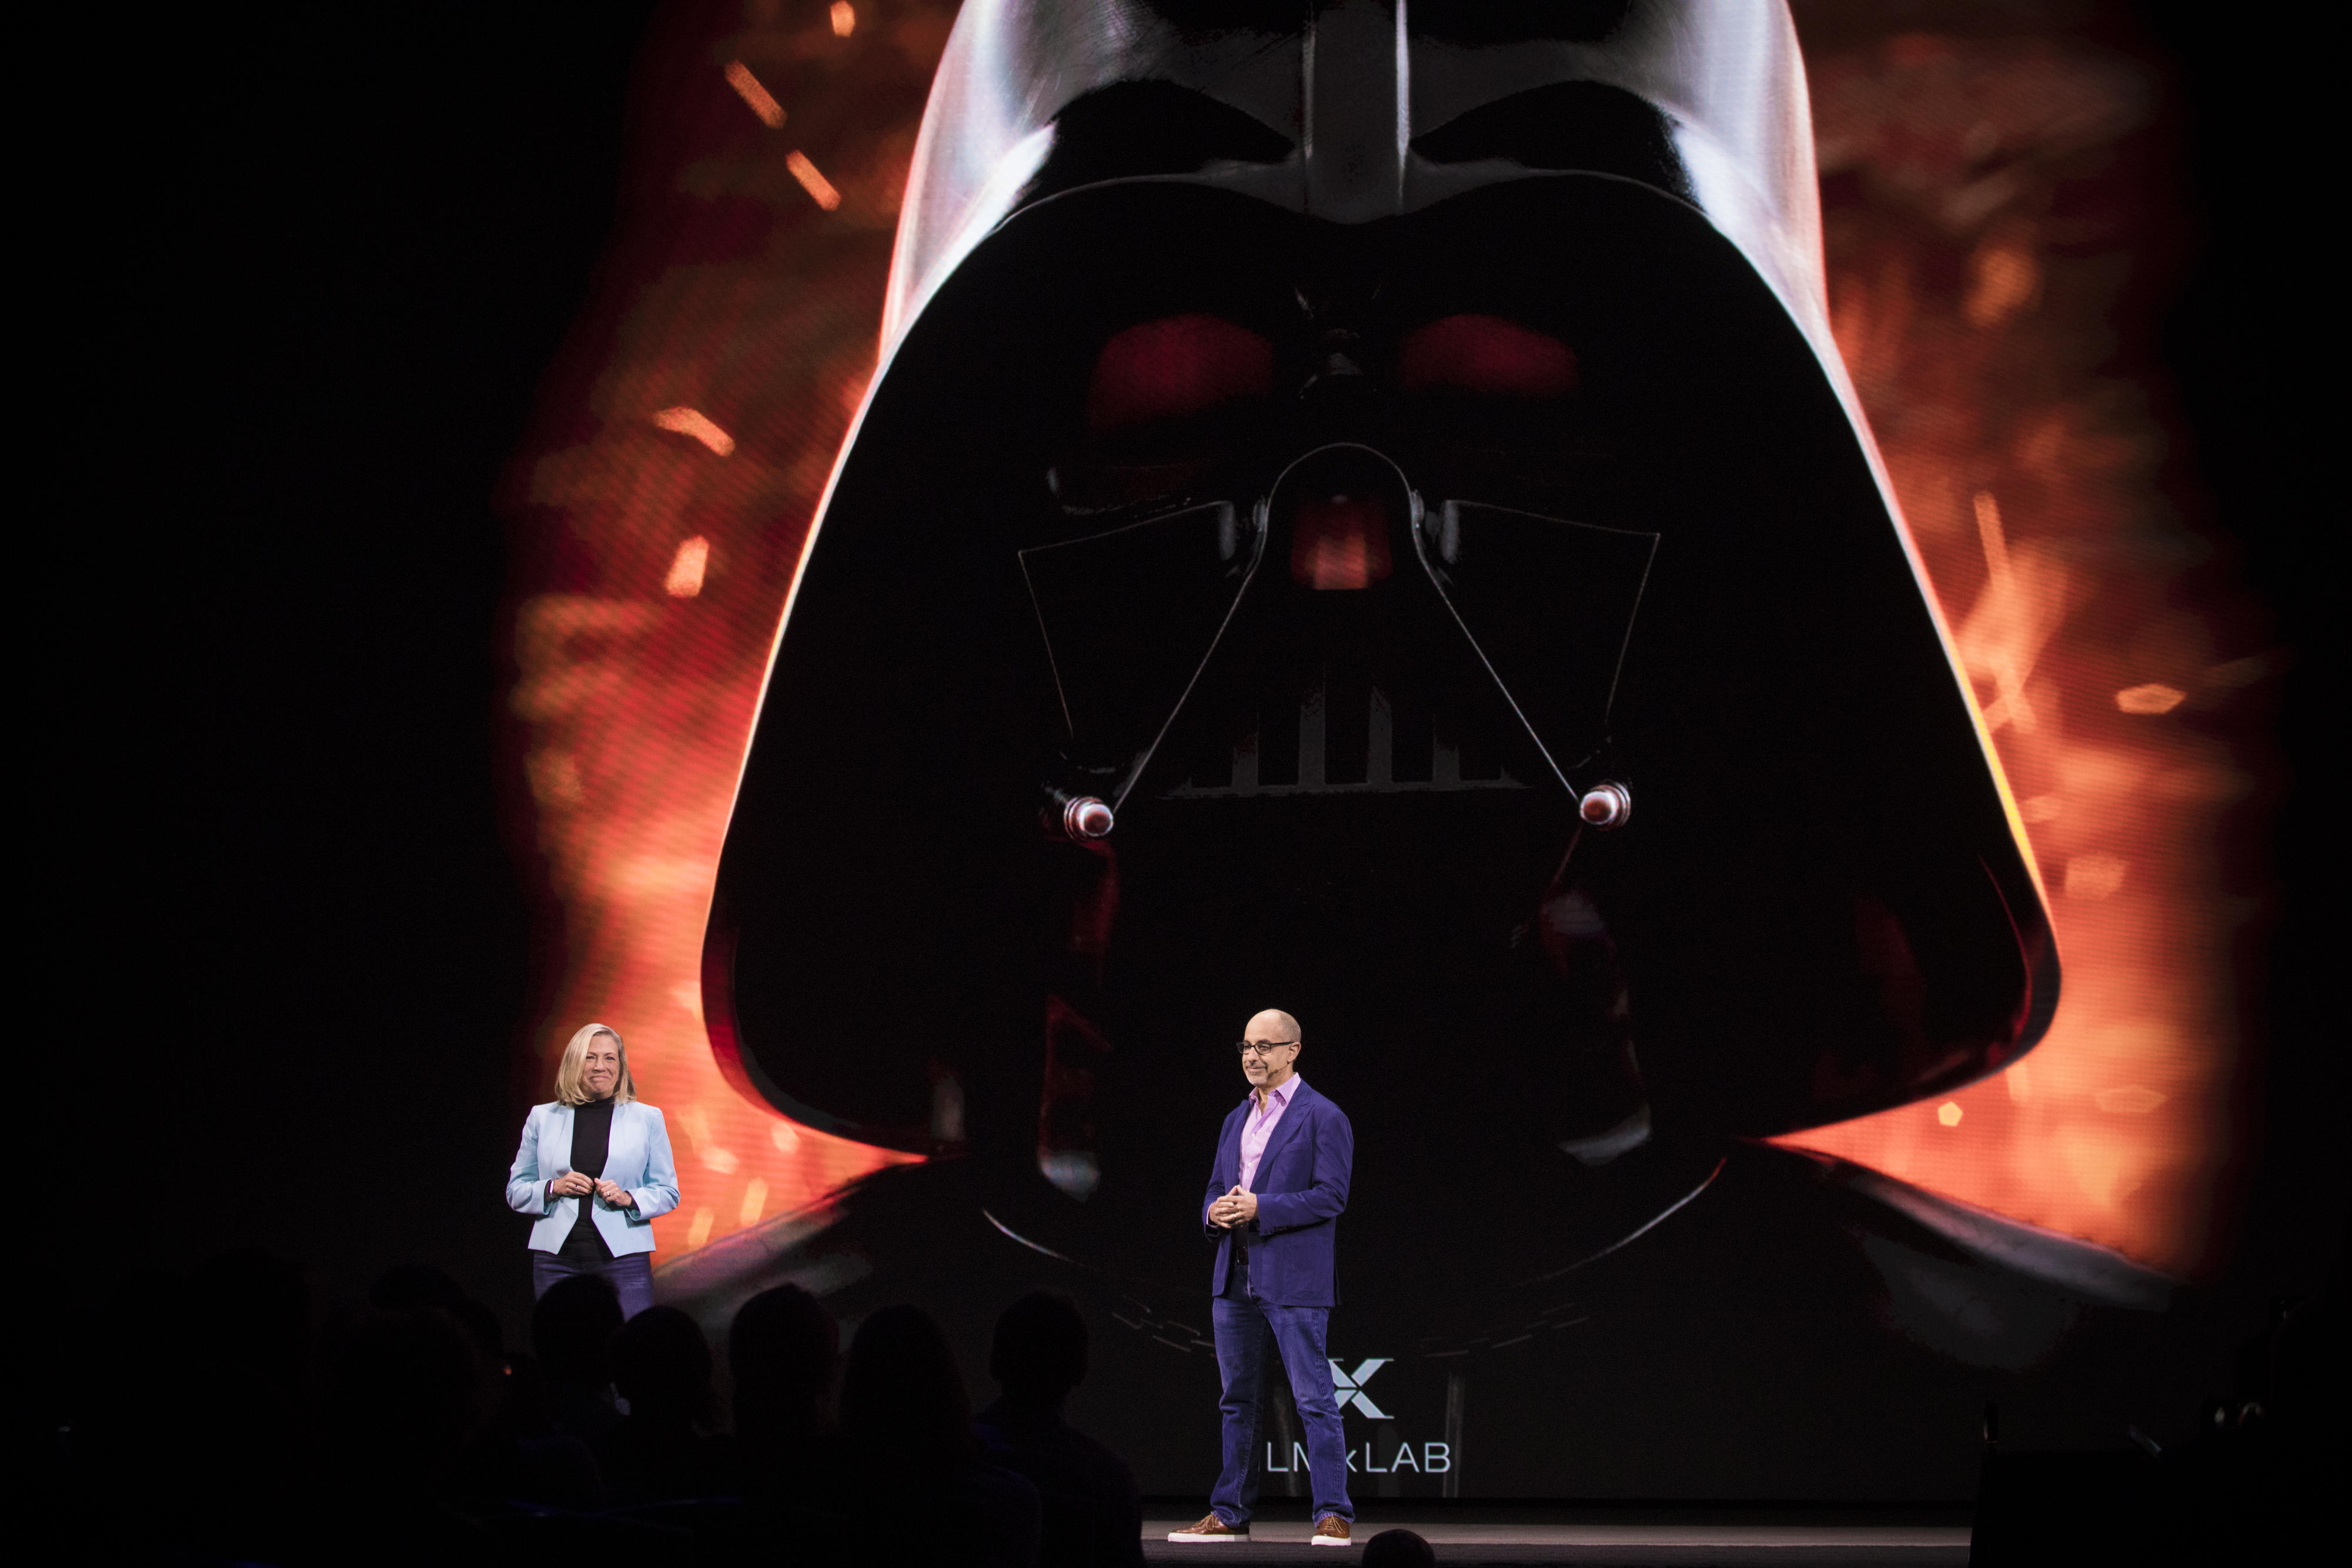 Facebook's Oculus laid out its plans for the coming year, including a Darth Vader series, at its Oculus Connect developer conference.